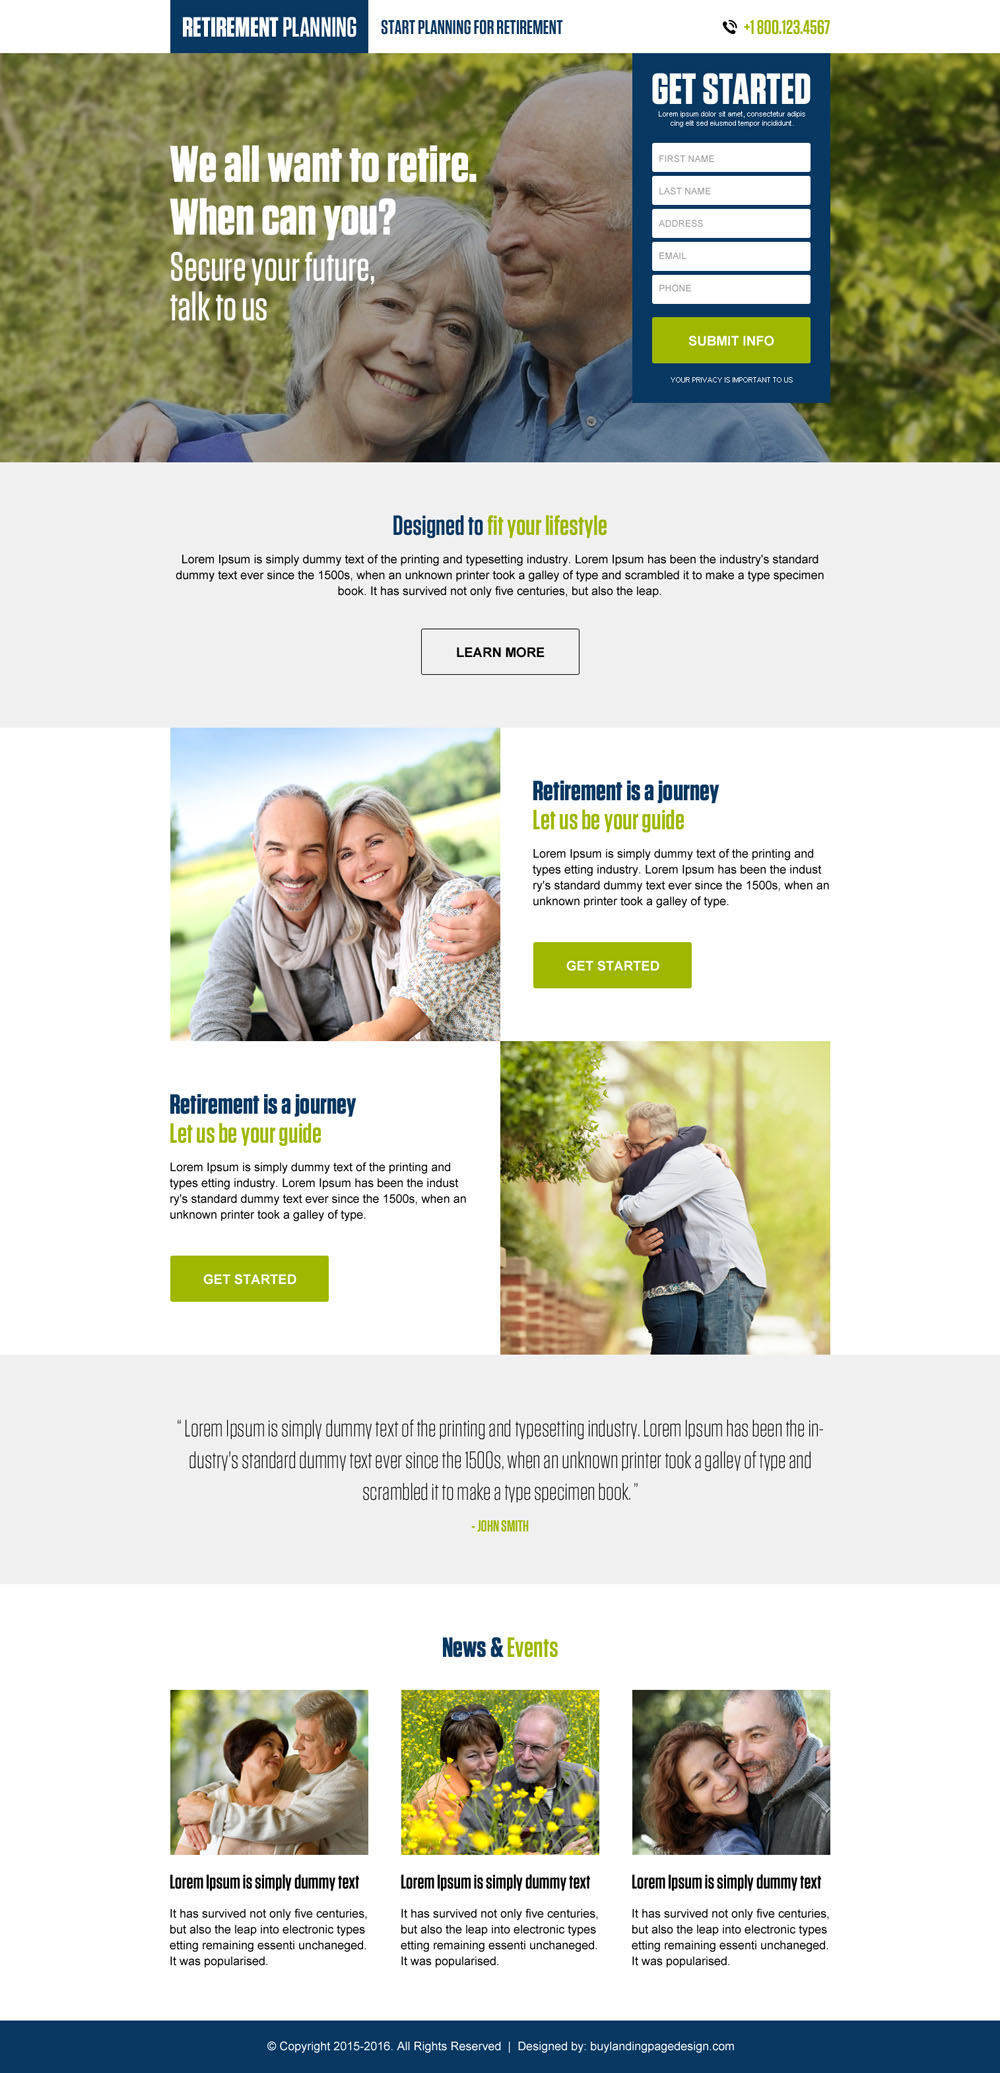 retirement-planning-lead-capture-converting-responsive-landing-page-design-template-001